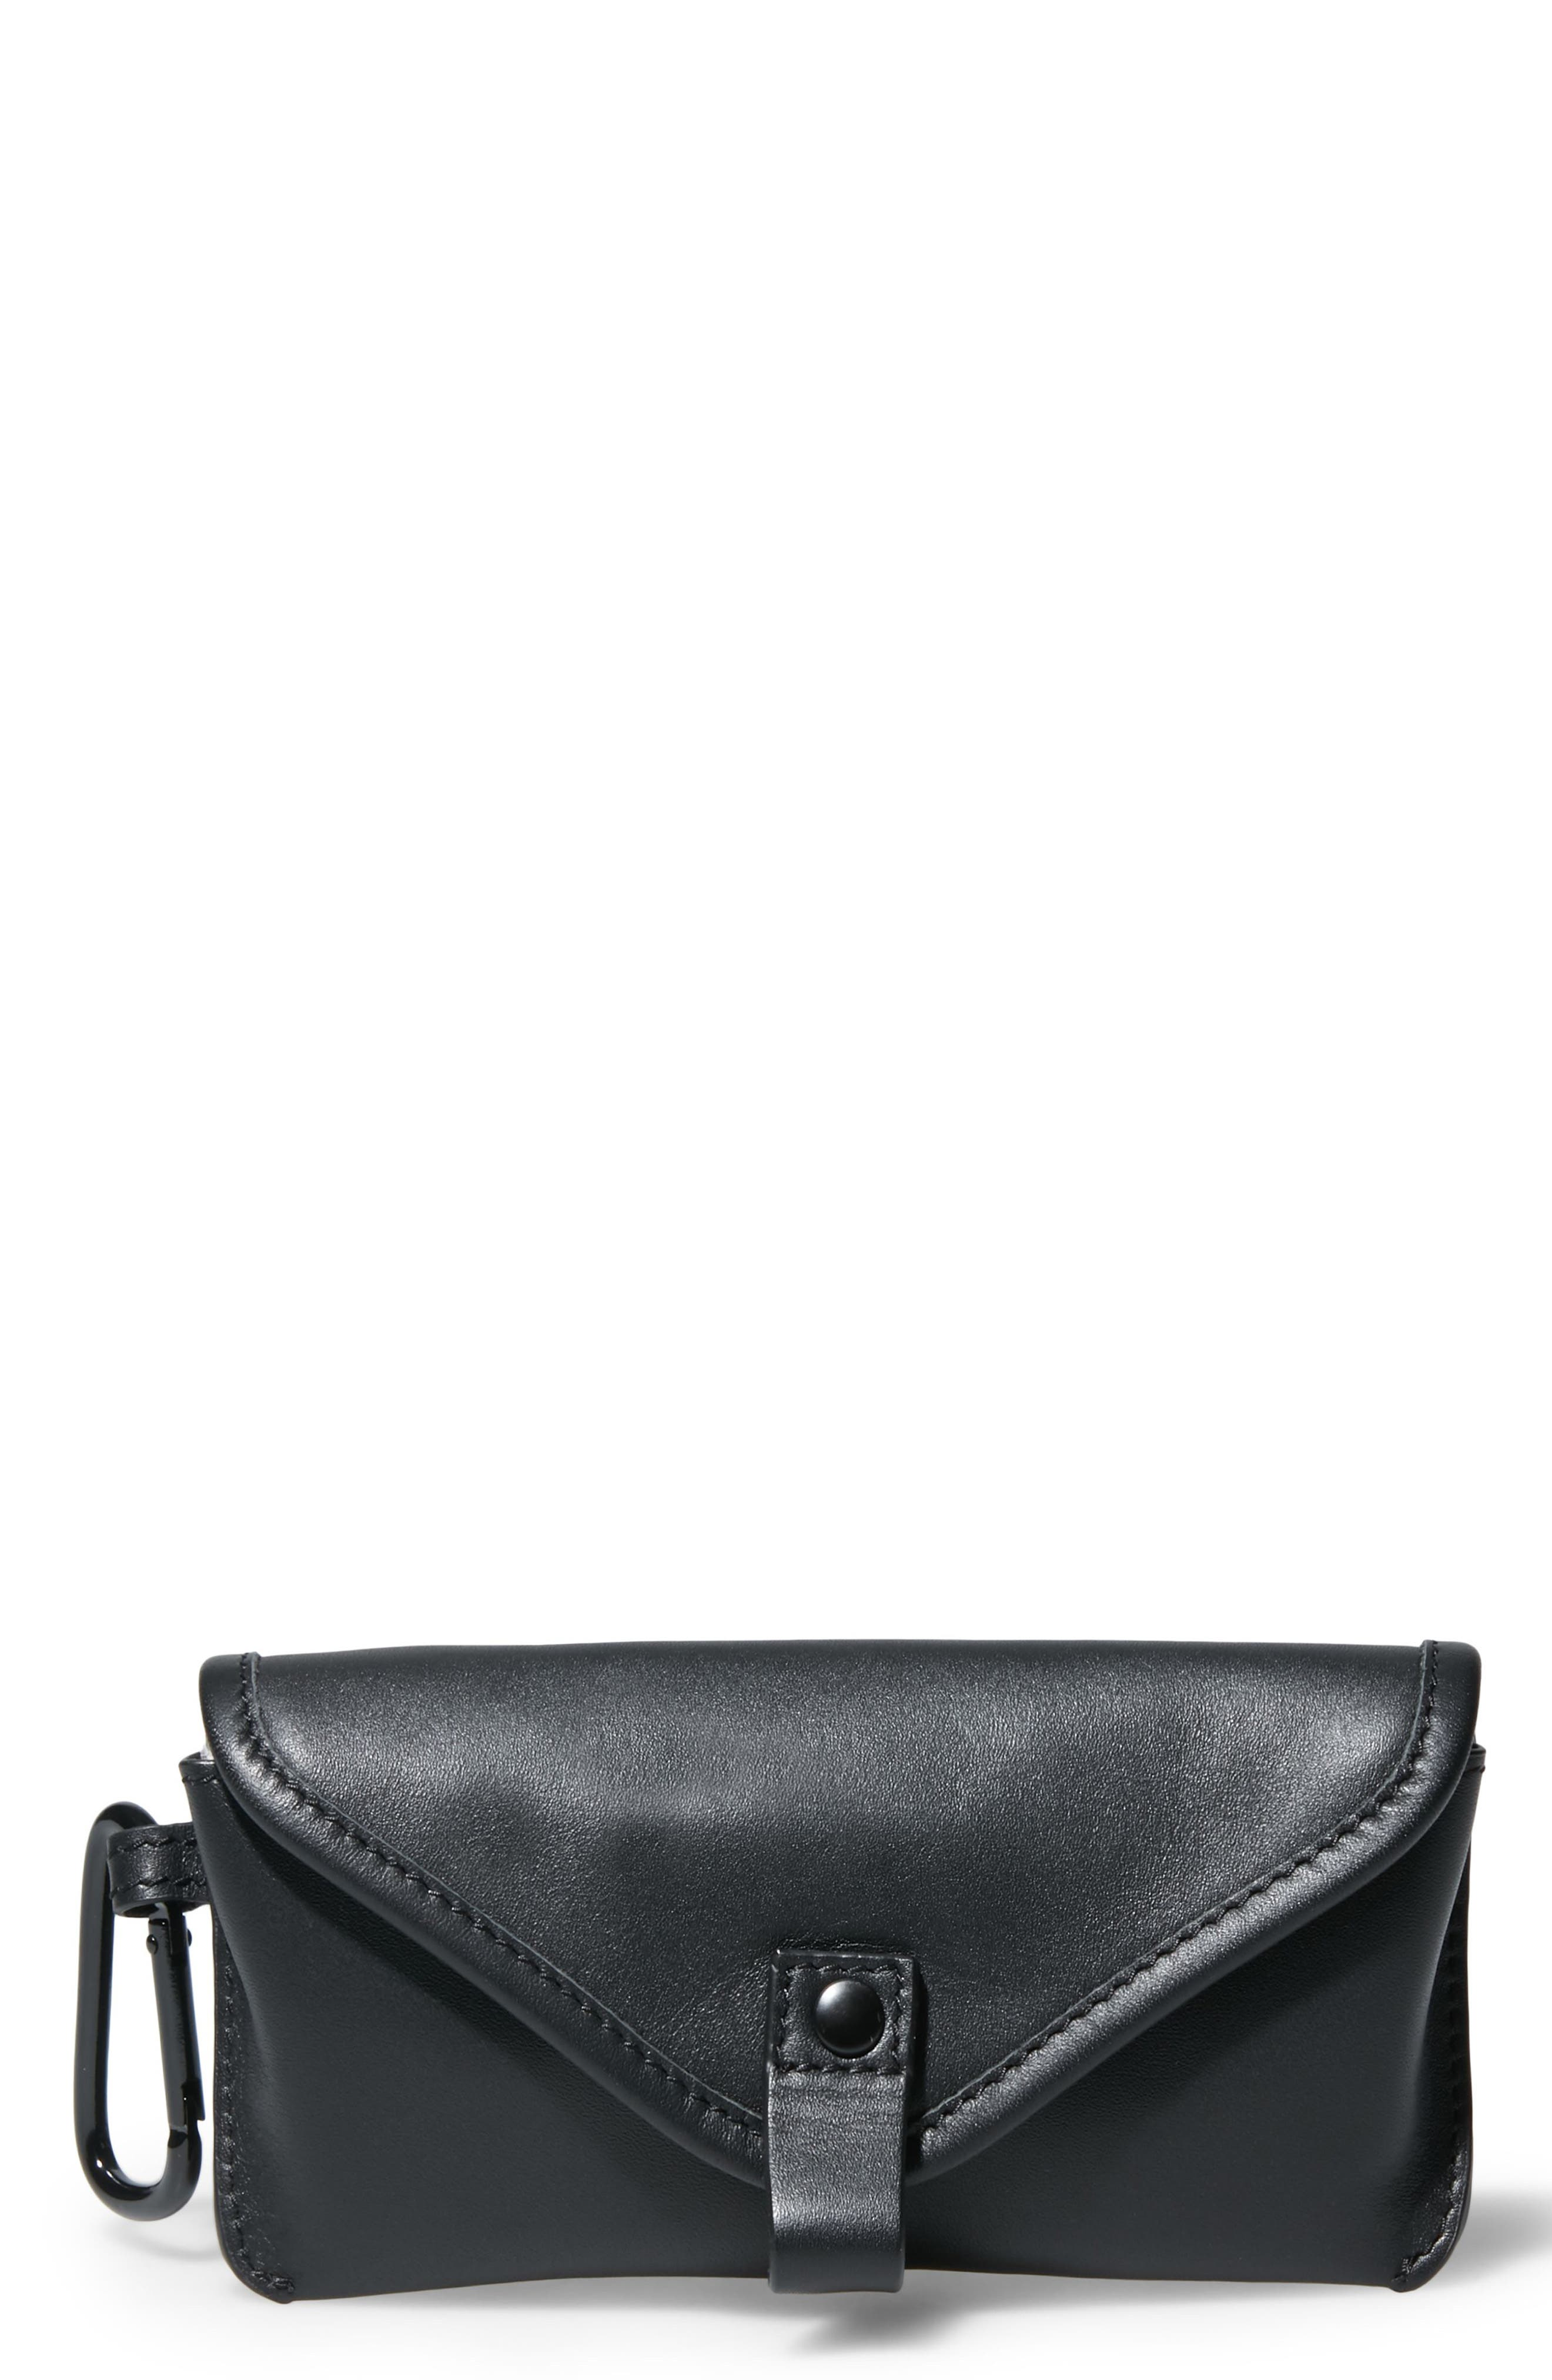 GQ x Steve Madden Leather Sunglasses Case,                         Main,                         color, Black